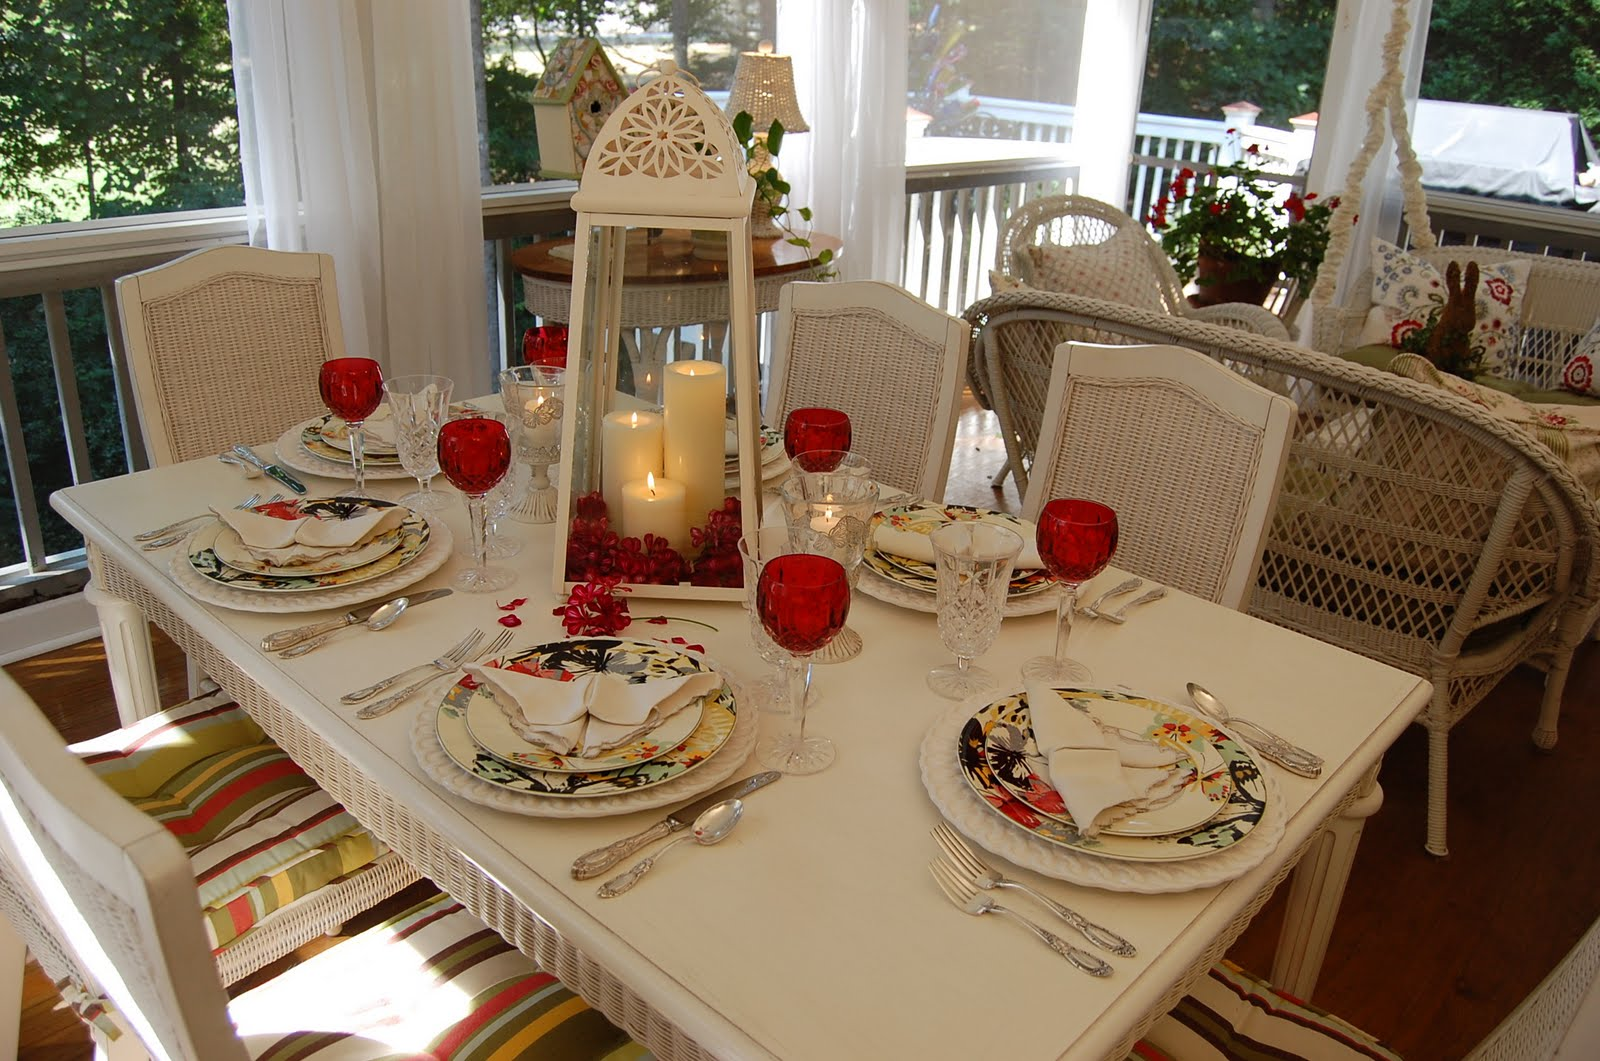 How to set a romantic dinner table for two - How To Set A Romantic Dinner Table For Two